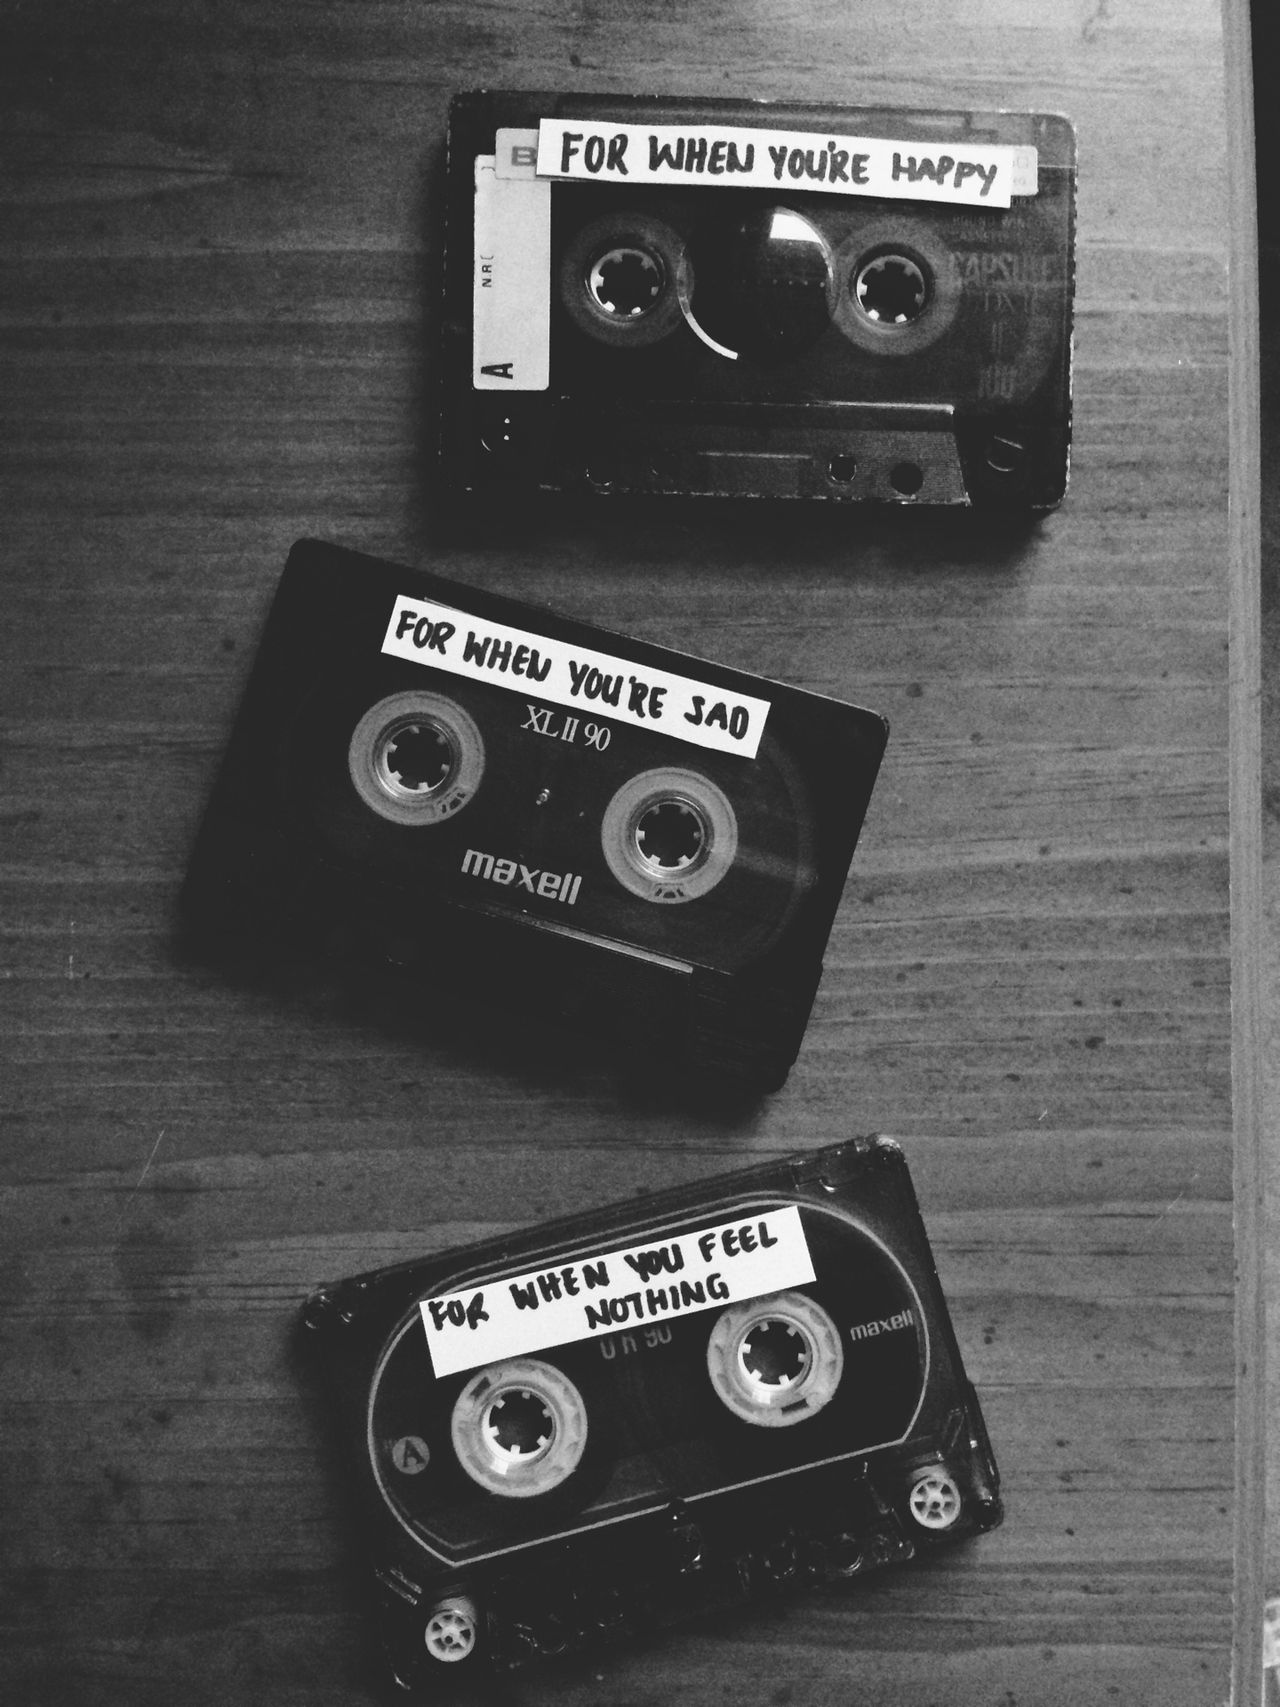 For When You Feel Mix Tapes